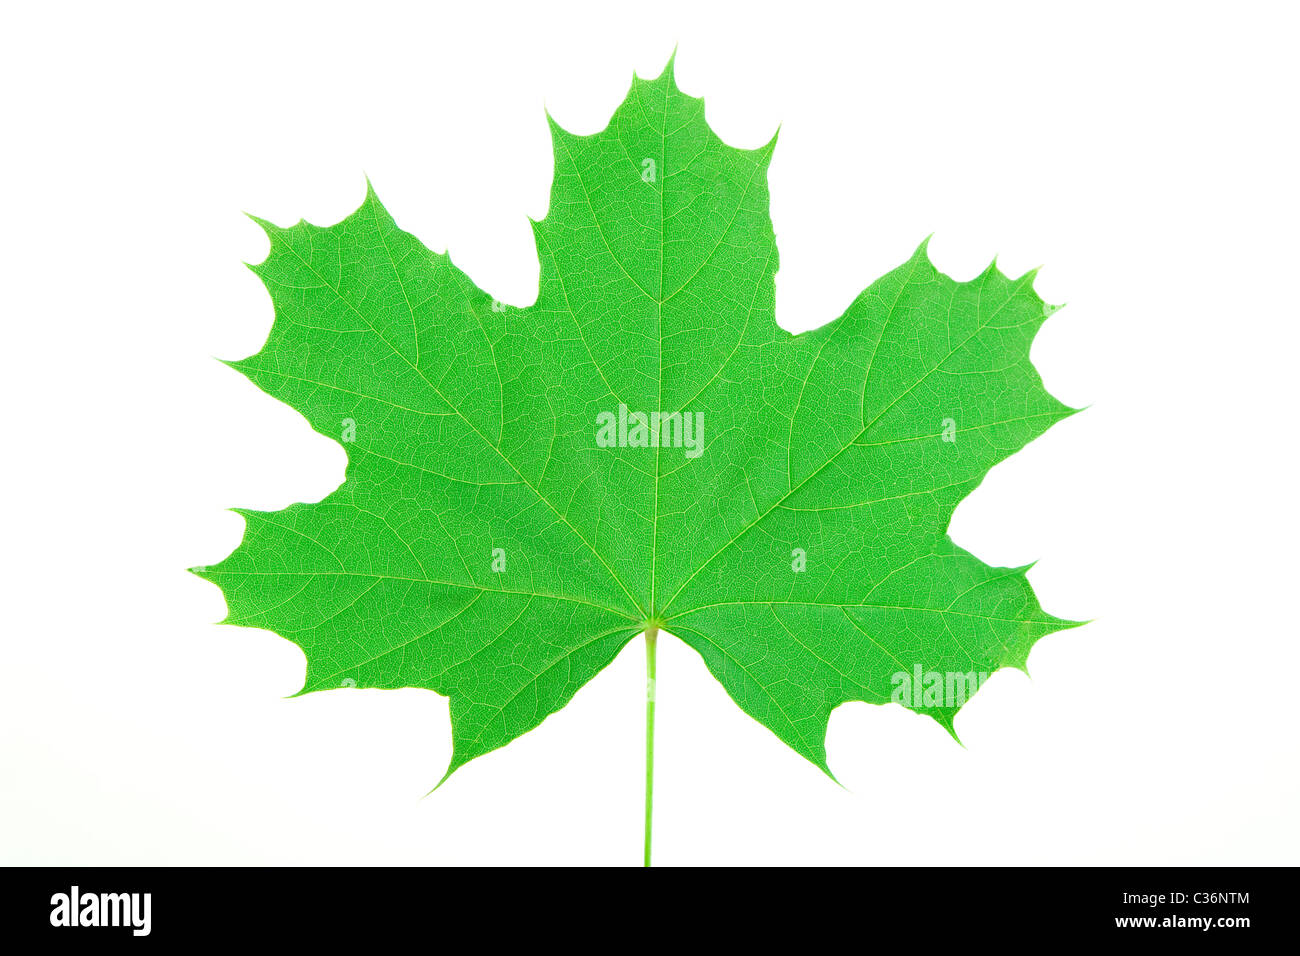 Front View Of Green Maple Leaf On White Background Canada Symbol